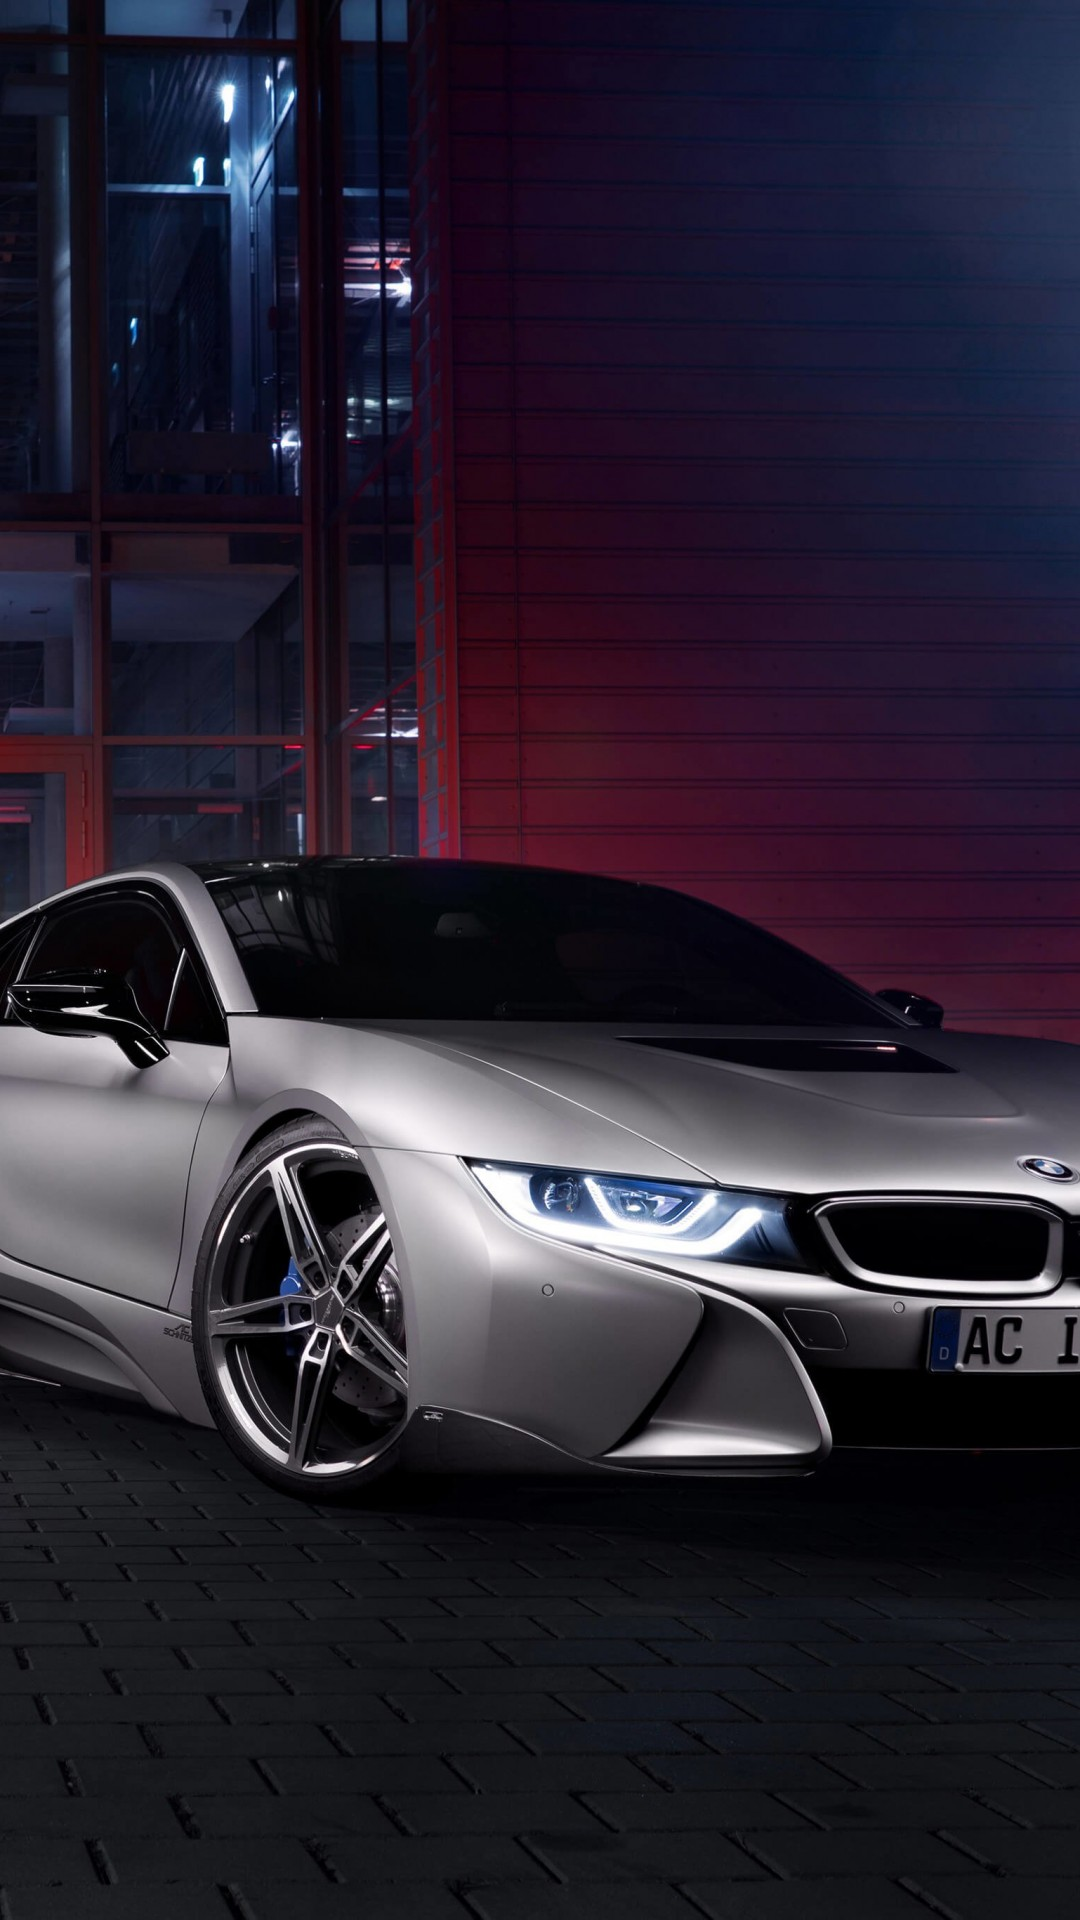 BMW i8 designed by AC Schnitzer Wallpaper for LG G2